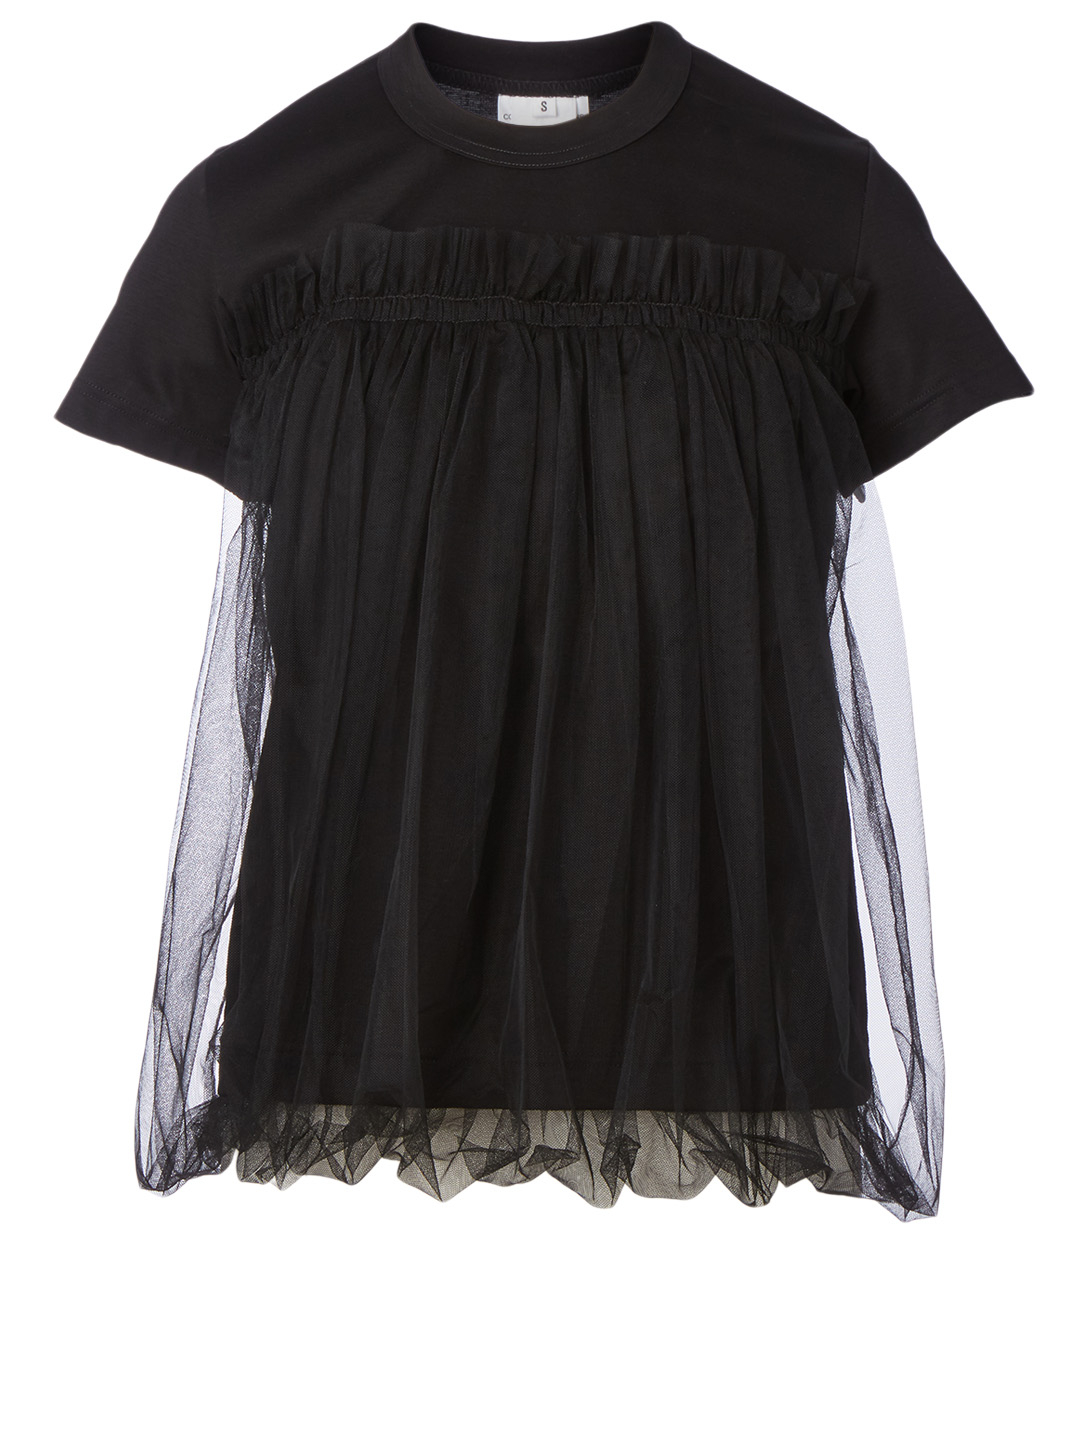 NOIR KEI NINOMIYA Cotton T-Shirt With Tulle Women's Black